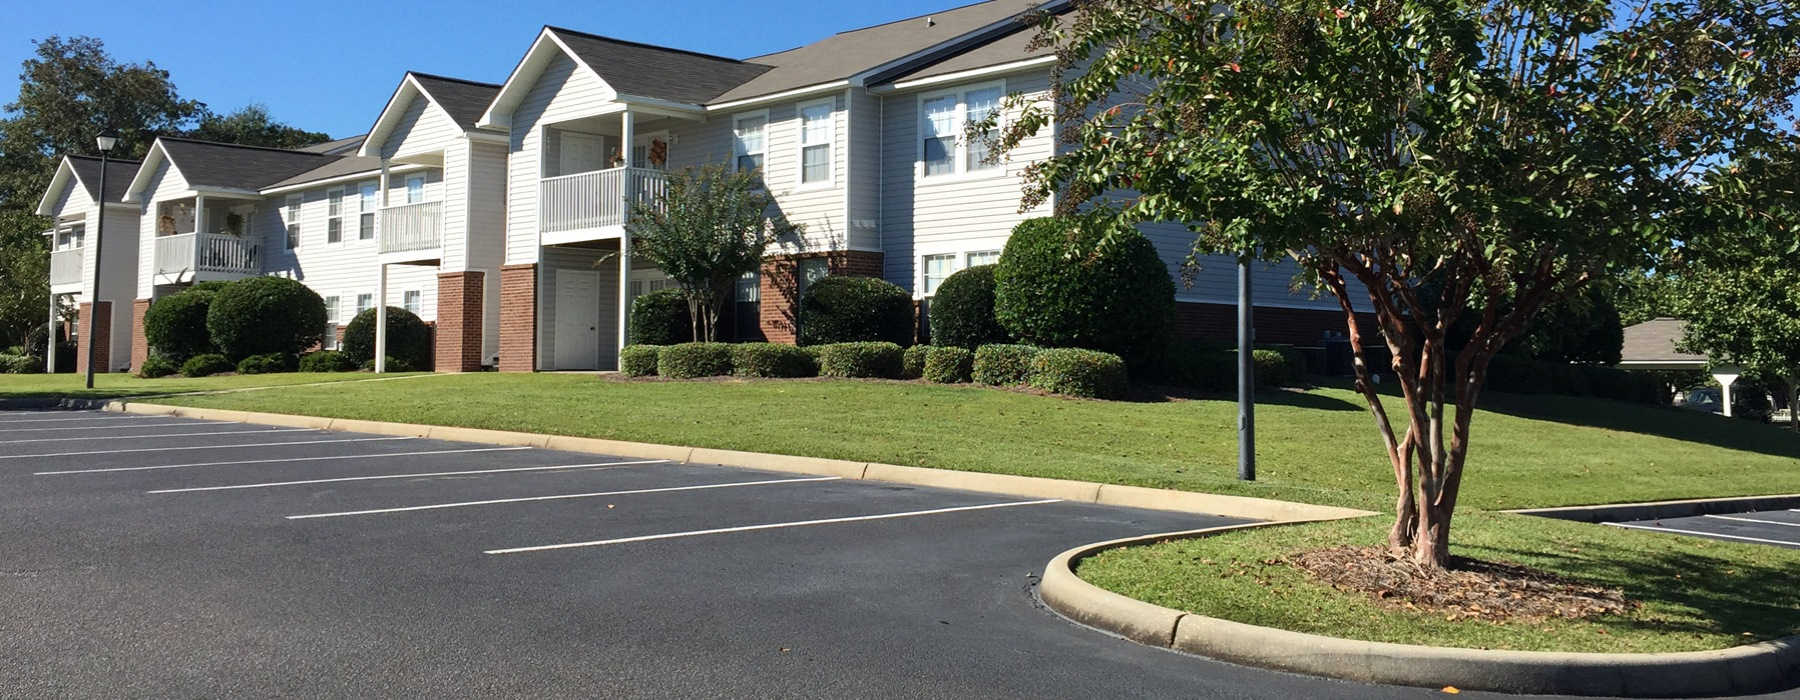 Beacon Ridge Apartments and Landscaping